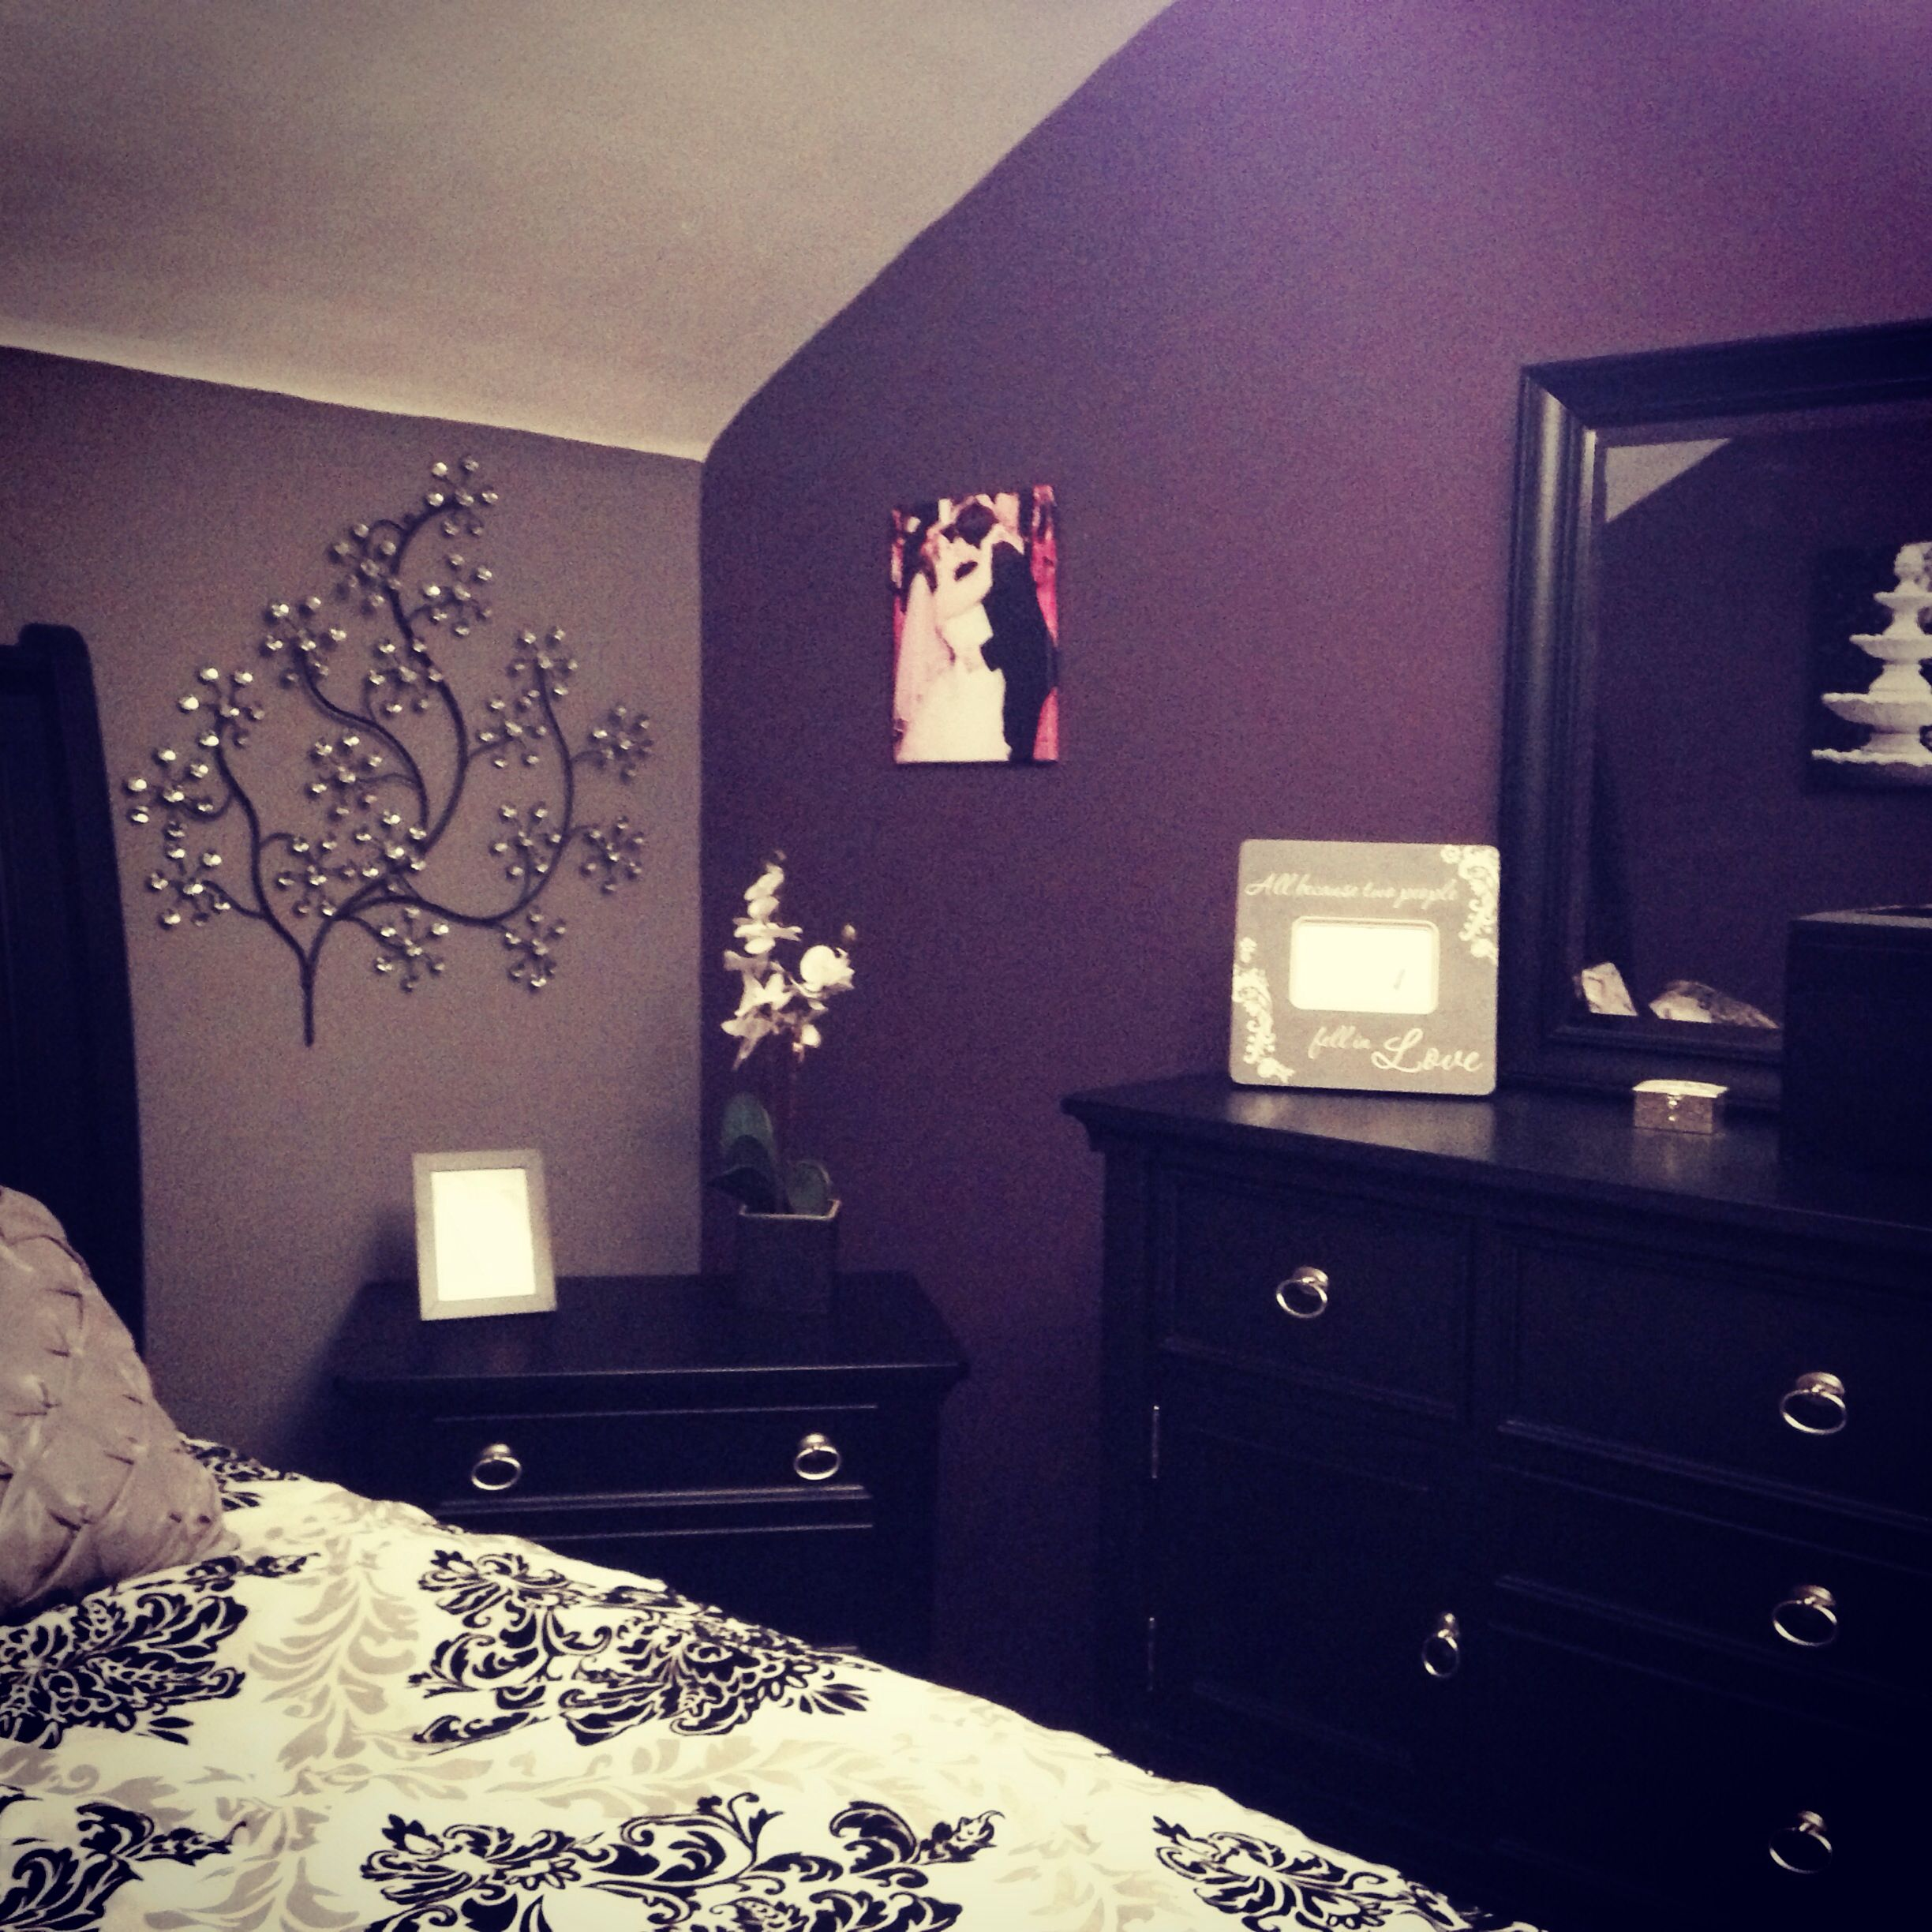 Bedroom colors grey purple - My Purple And Grey Bedroom